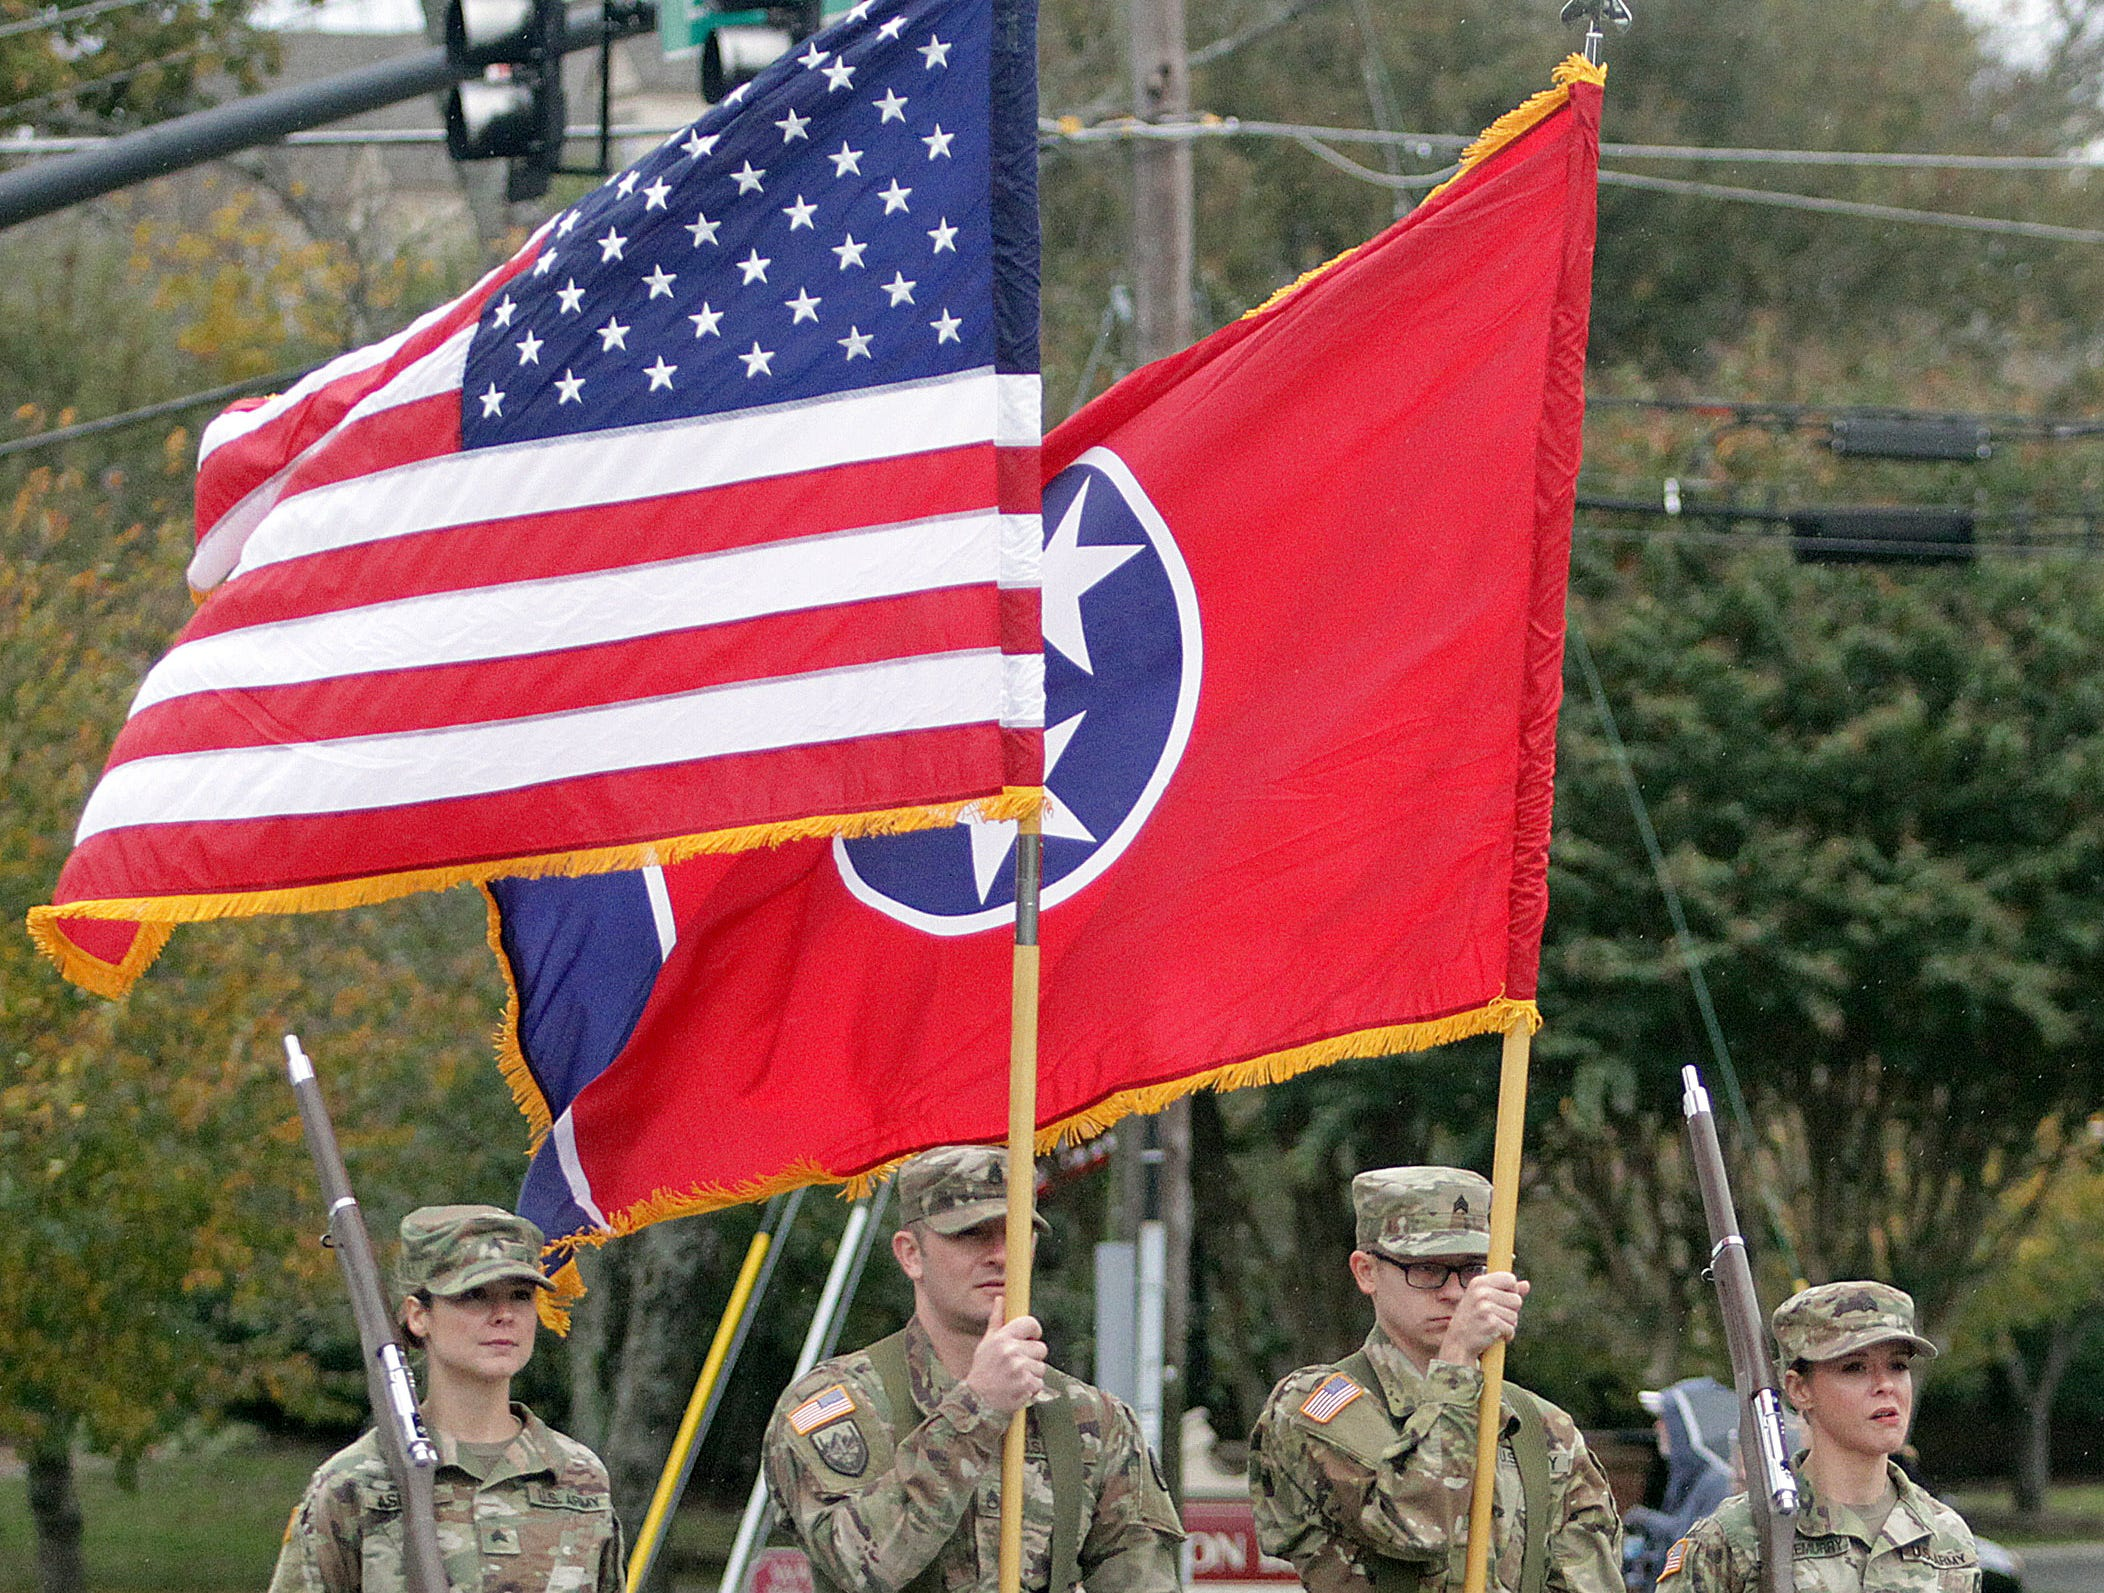 Tennessee National Guard members walk in the Veterans Day Parade in Hendersonville, TN on Sunday, November 4, 2018.